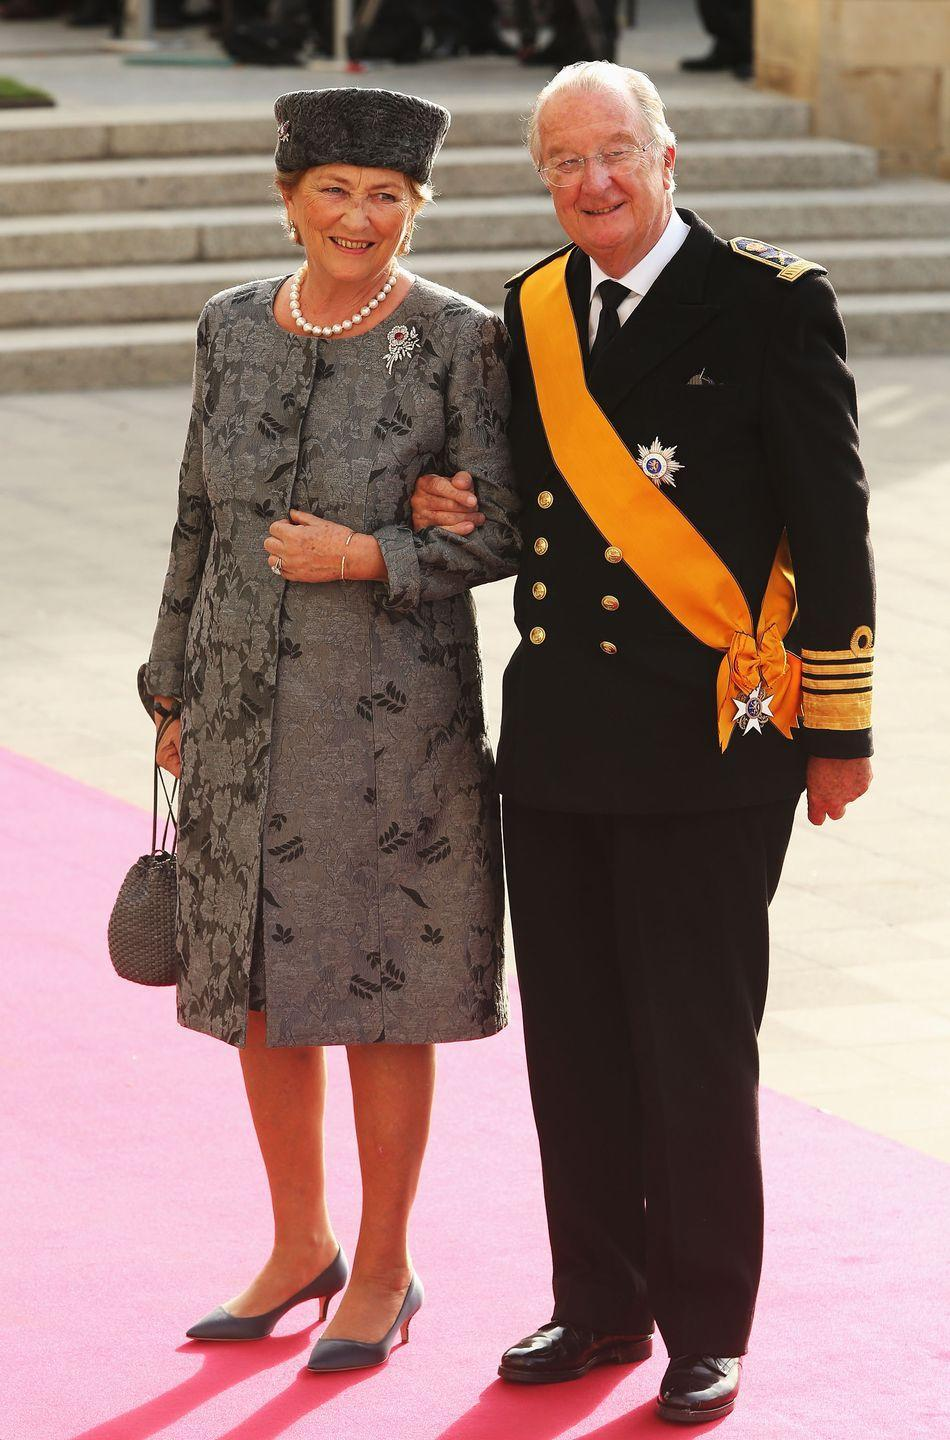 "<p>It's apparently an 'open secret' (though a paternity test has never been done) that Belgian sculptor Delphine Boël is the daughter of King Albert II of Belgium. The daughter is said to be the result of an affair the King had with Baroness Sybille de Selys Longchamps. </p><p>Delphine says her mother didn't tell her who her father was until she was 18 years old, and she's been trying to get in contact ever since. She's currently in court, trying to prove that he's her father. As of May 2019, King Albert II <a href=""https://www.theguardian.com/world/2019/may/29/former-belgian-king-albert-ii-agrees-to-dna-test-in-paternity-case-delphine-boel"" rel=""nofollow noopener"" target=""_blank"" data-ylk=""slk:has agreed to submit a DNA test."" class=""link rapid-noclick-resp"">has agreed to submit a DNA test.</a></p>"